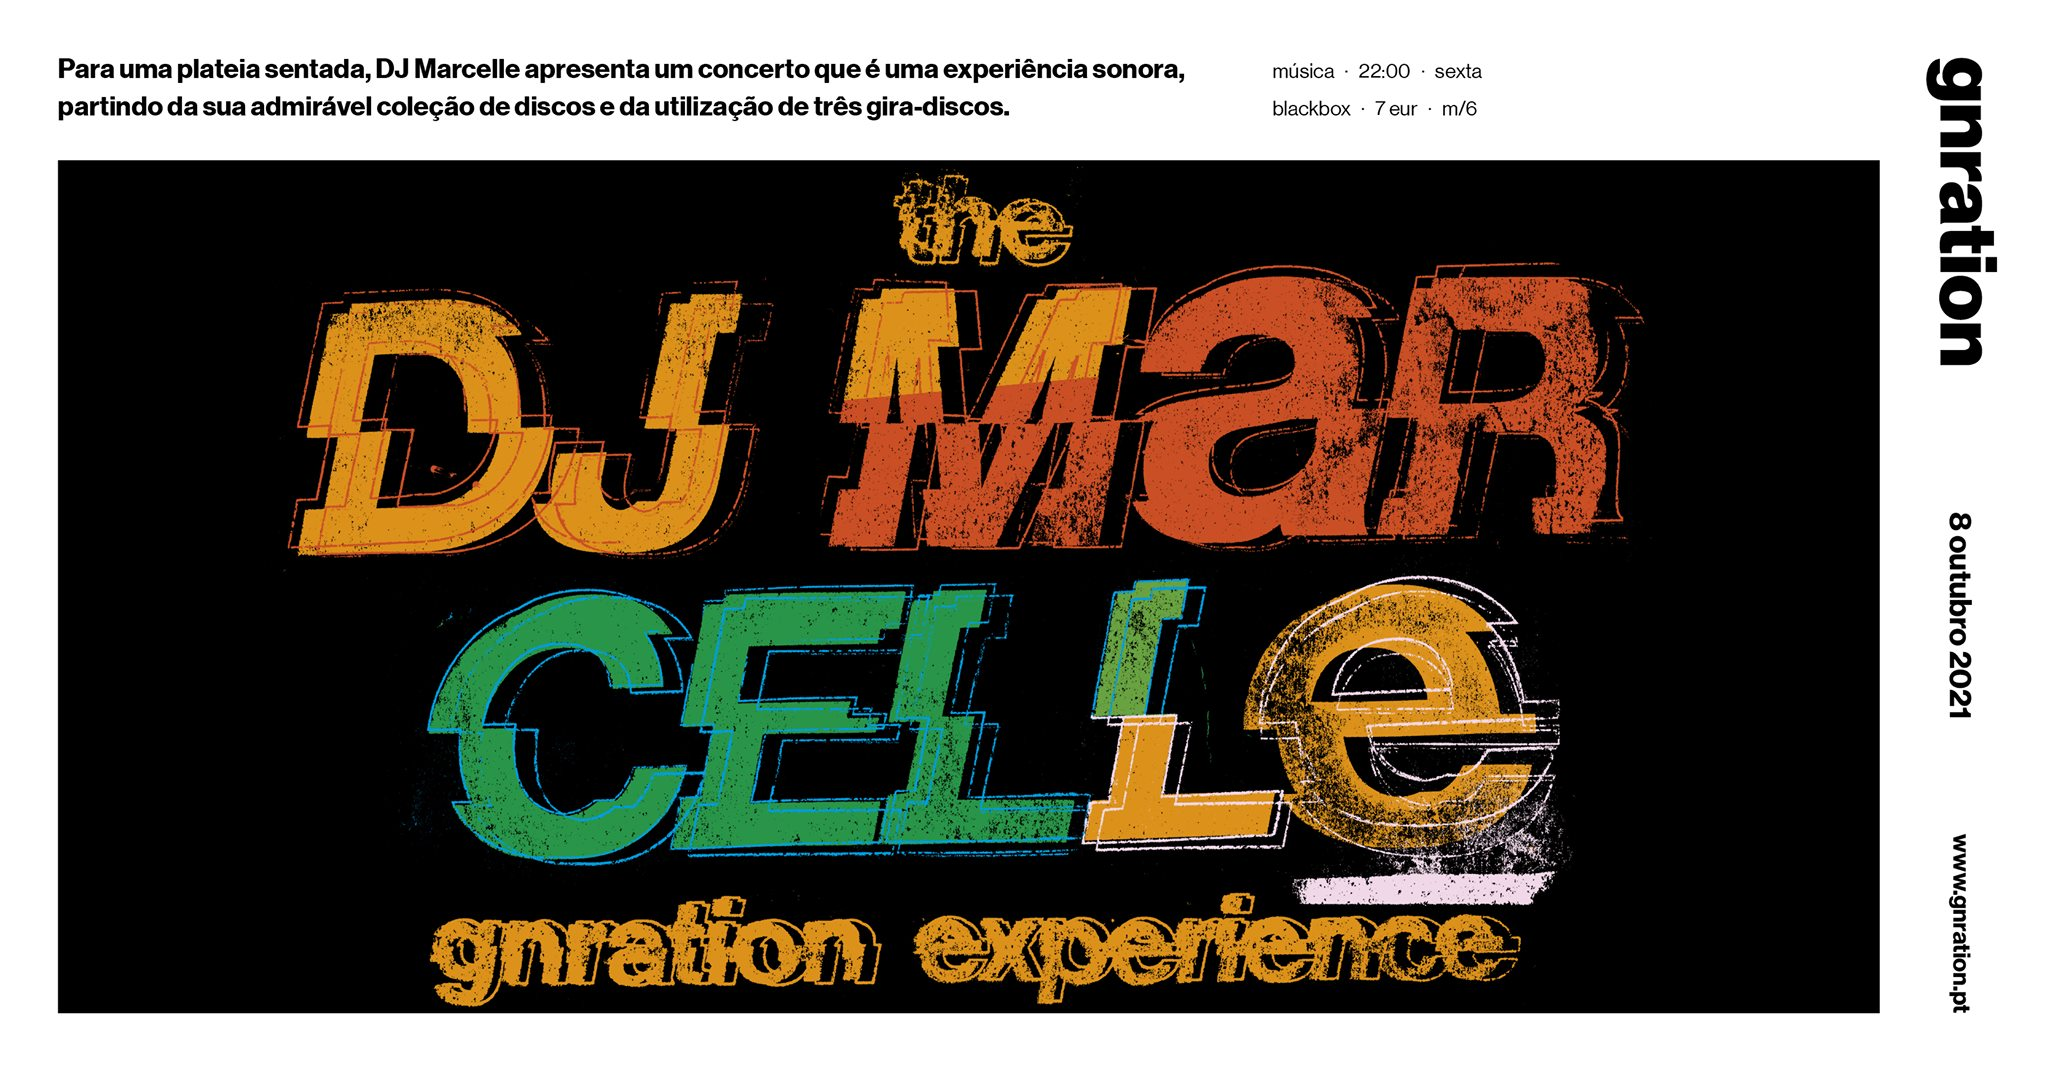 The DJ Marcelle gnration experience   gnration